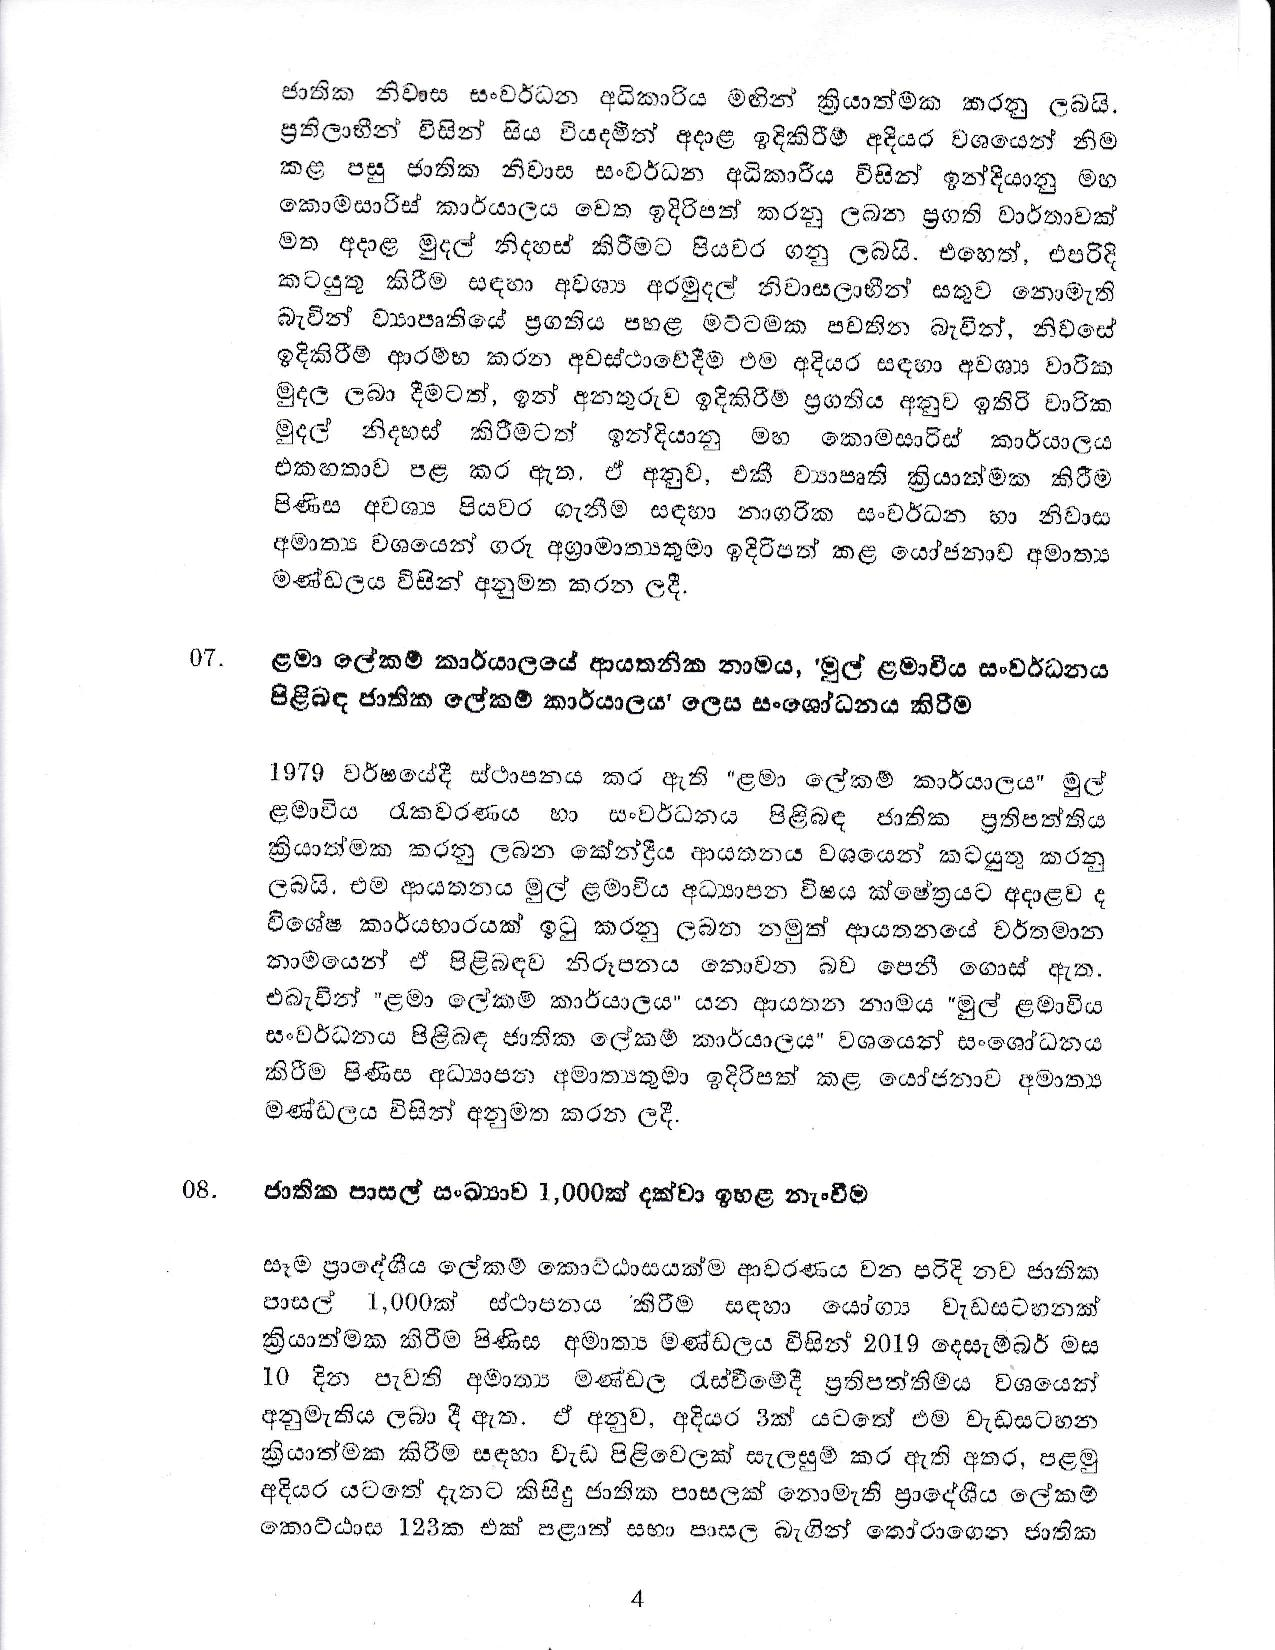 Cabinet Decision on 07.12.2020 Sinhala page 004